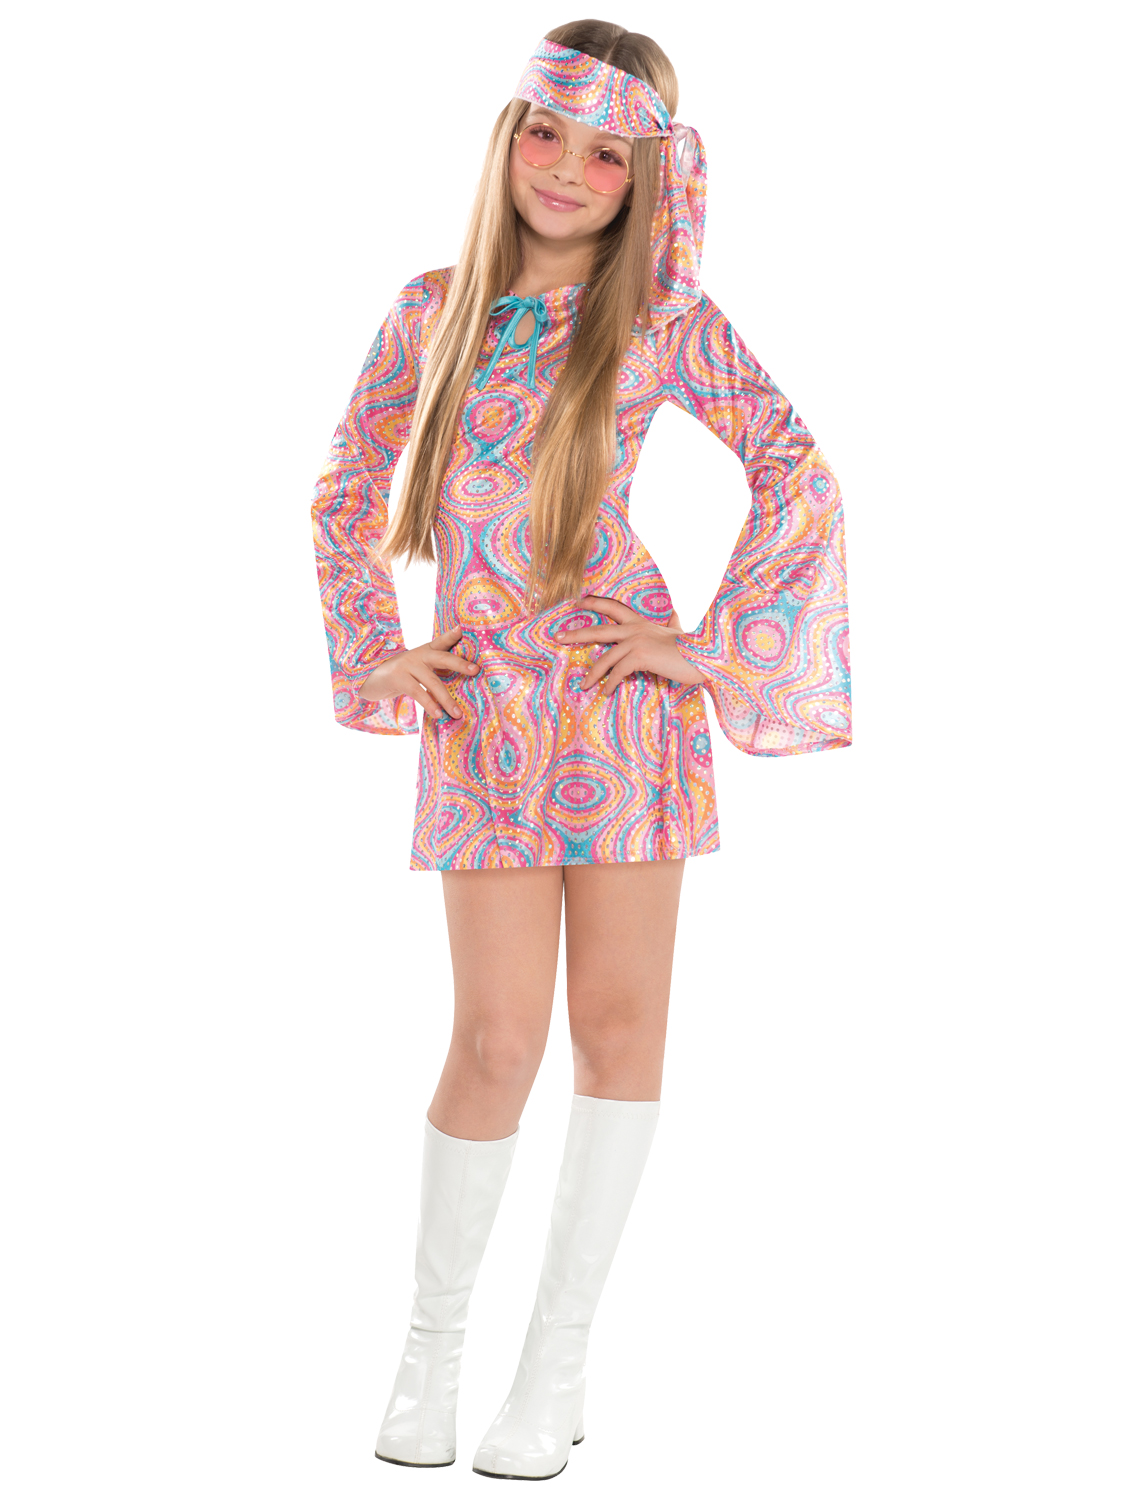 This cute disco a costume features a multicolored swirl printed mini dress decorated with holographic silver spots long bell sleeves and a blue ribbon ...  sc 1 st  eBay & Girls Teen Disco Diva 1970s 60s Fancy Dress Hippy Kids Childrens ...